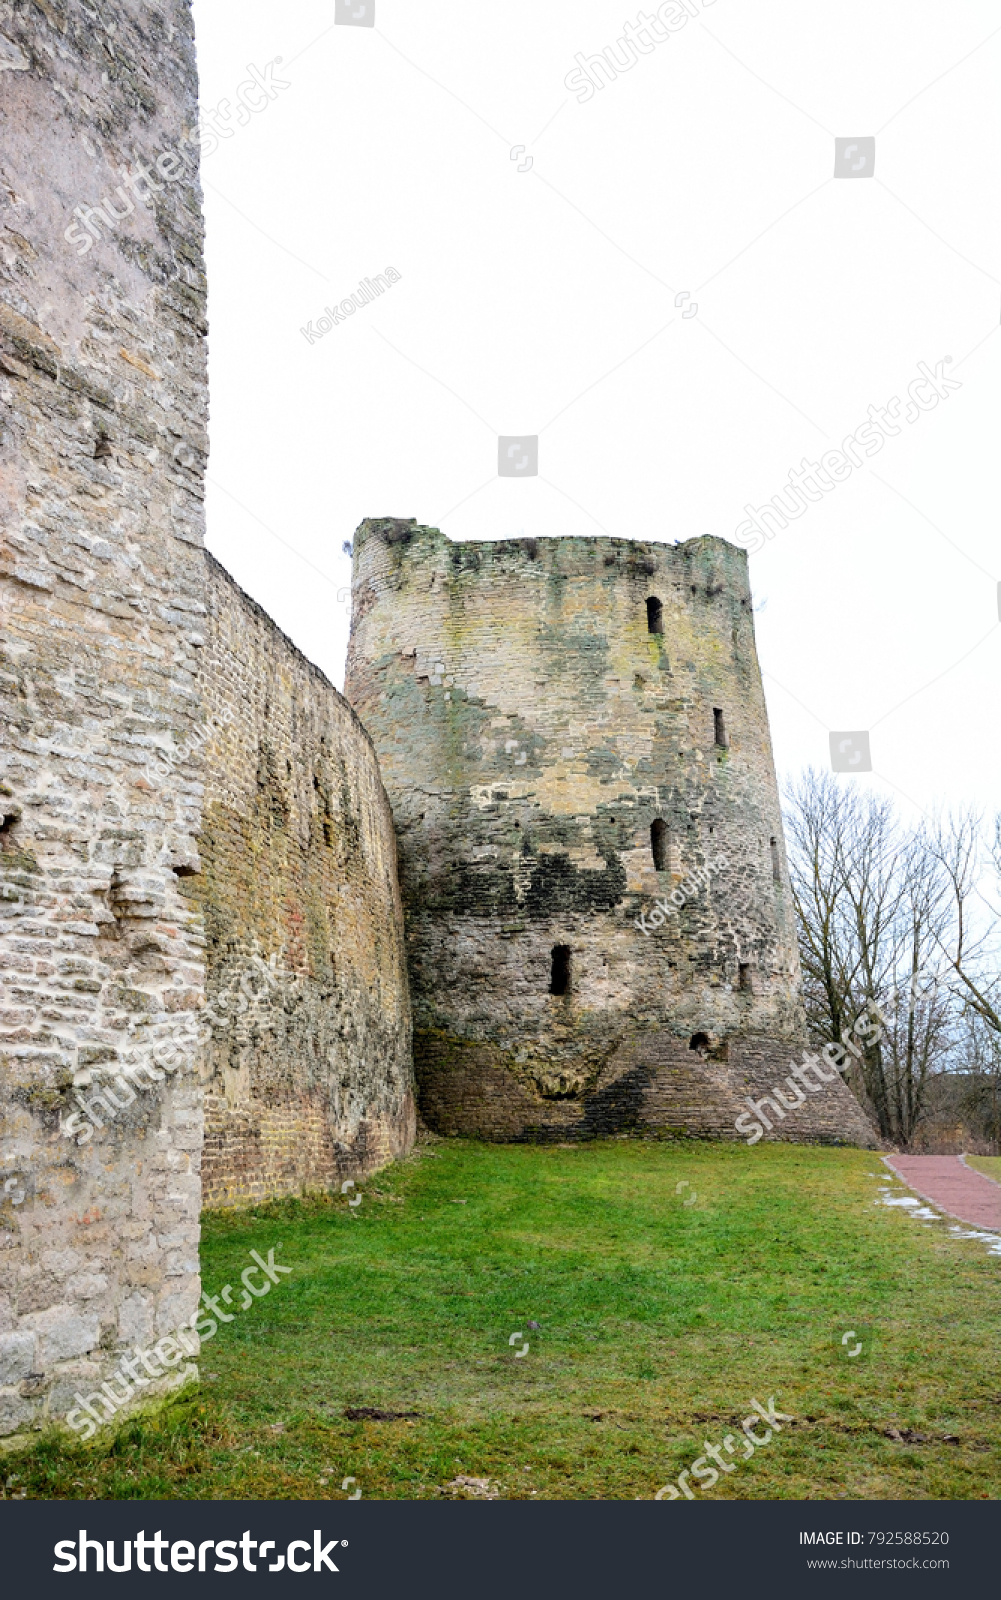 The surroundings of Pskov - the main historical sights